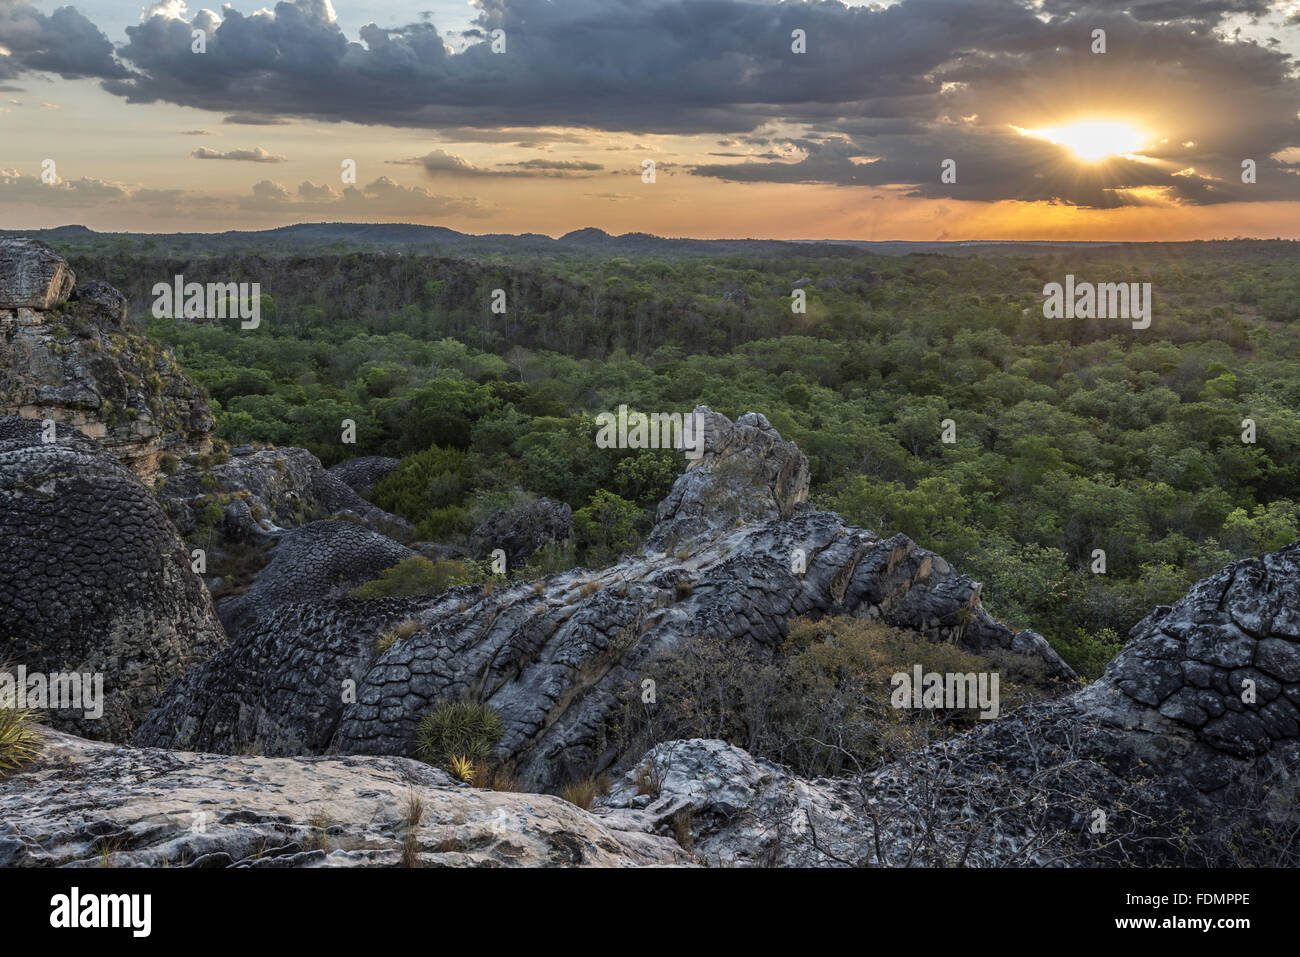 Viewpoint of the view of the National Park of Seven Cities - Second City - Stock Image